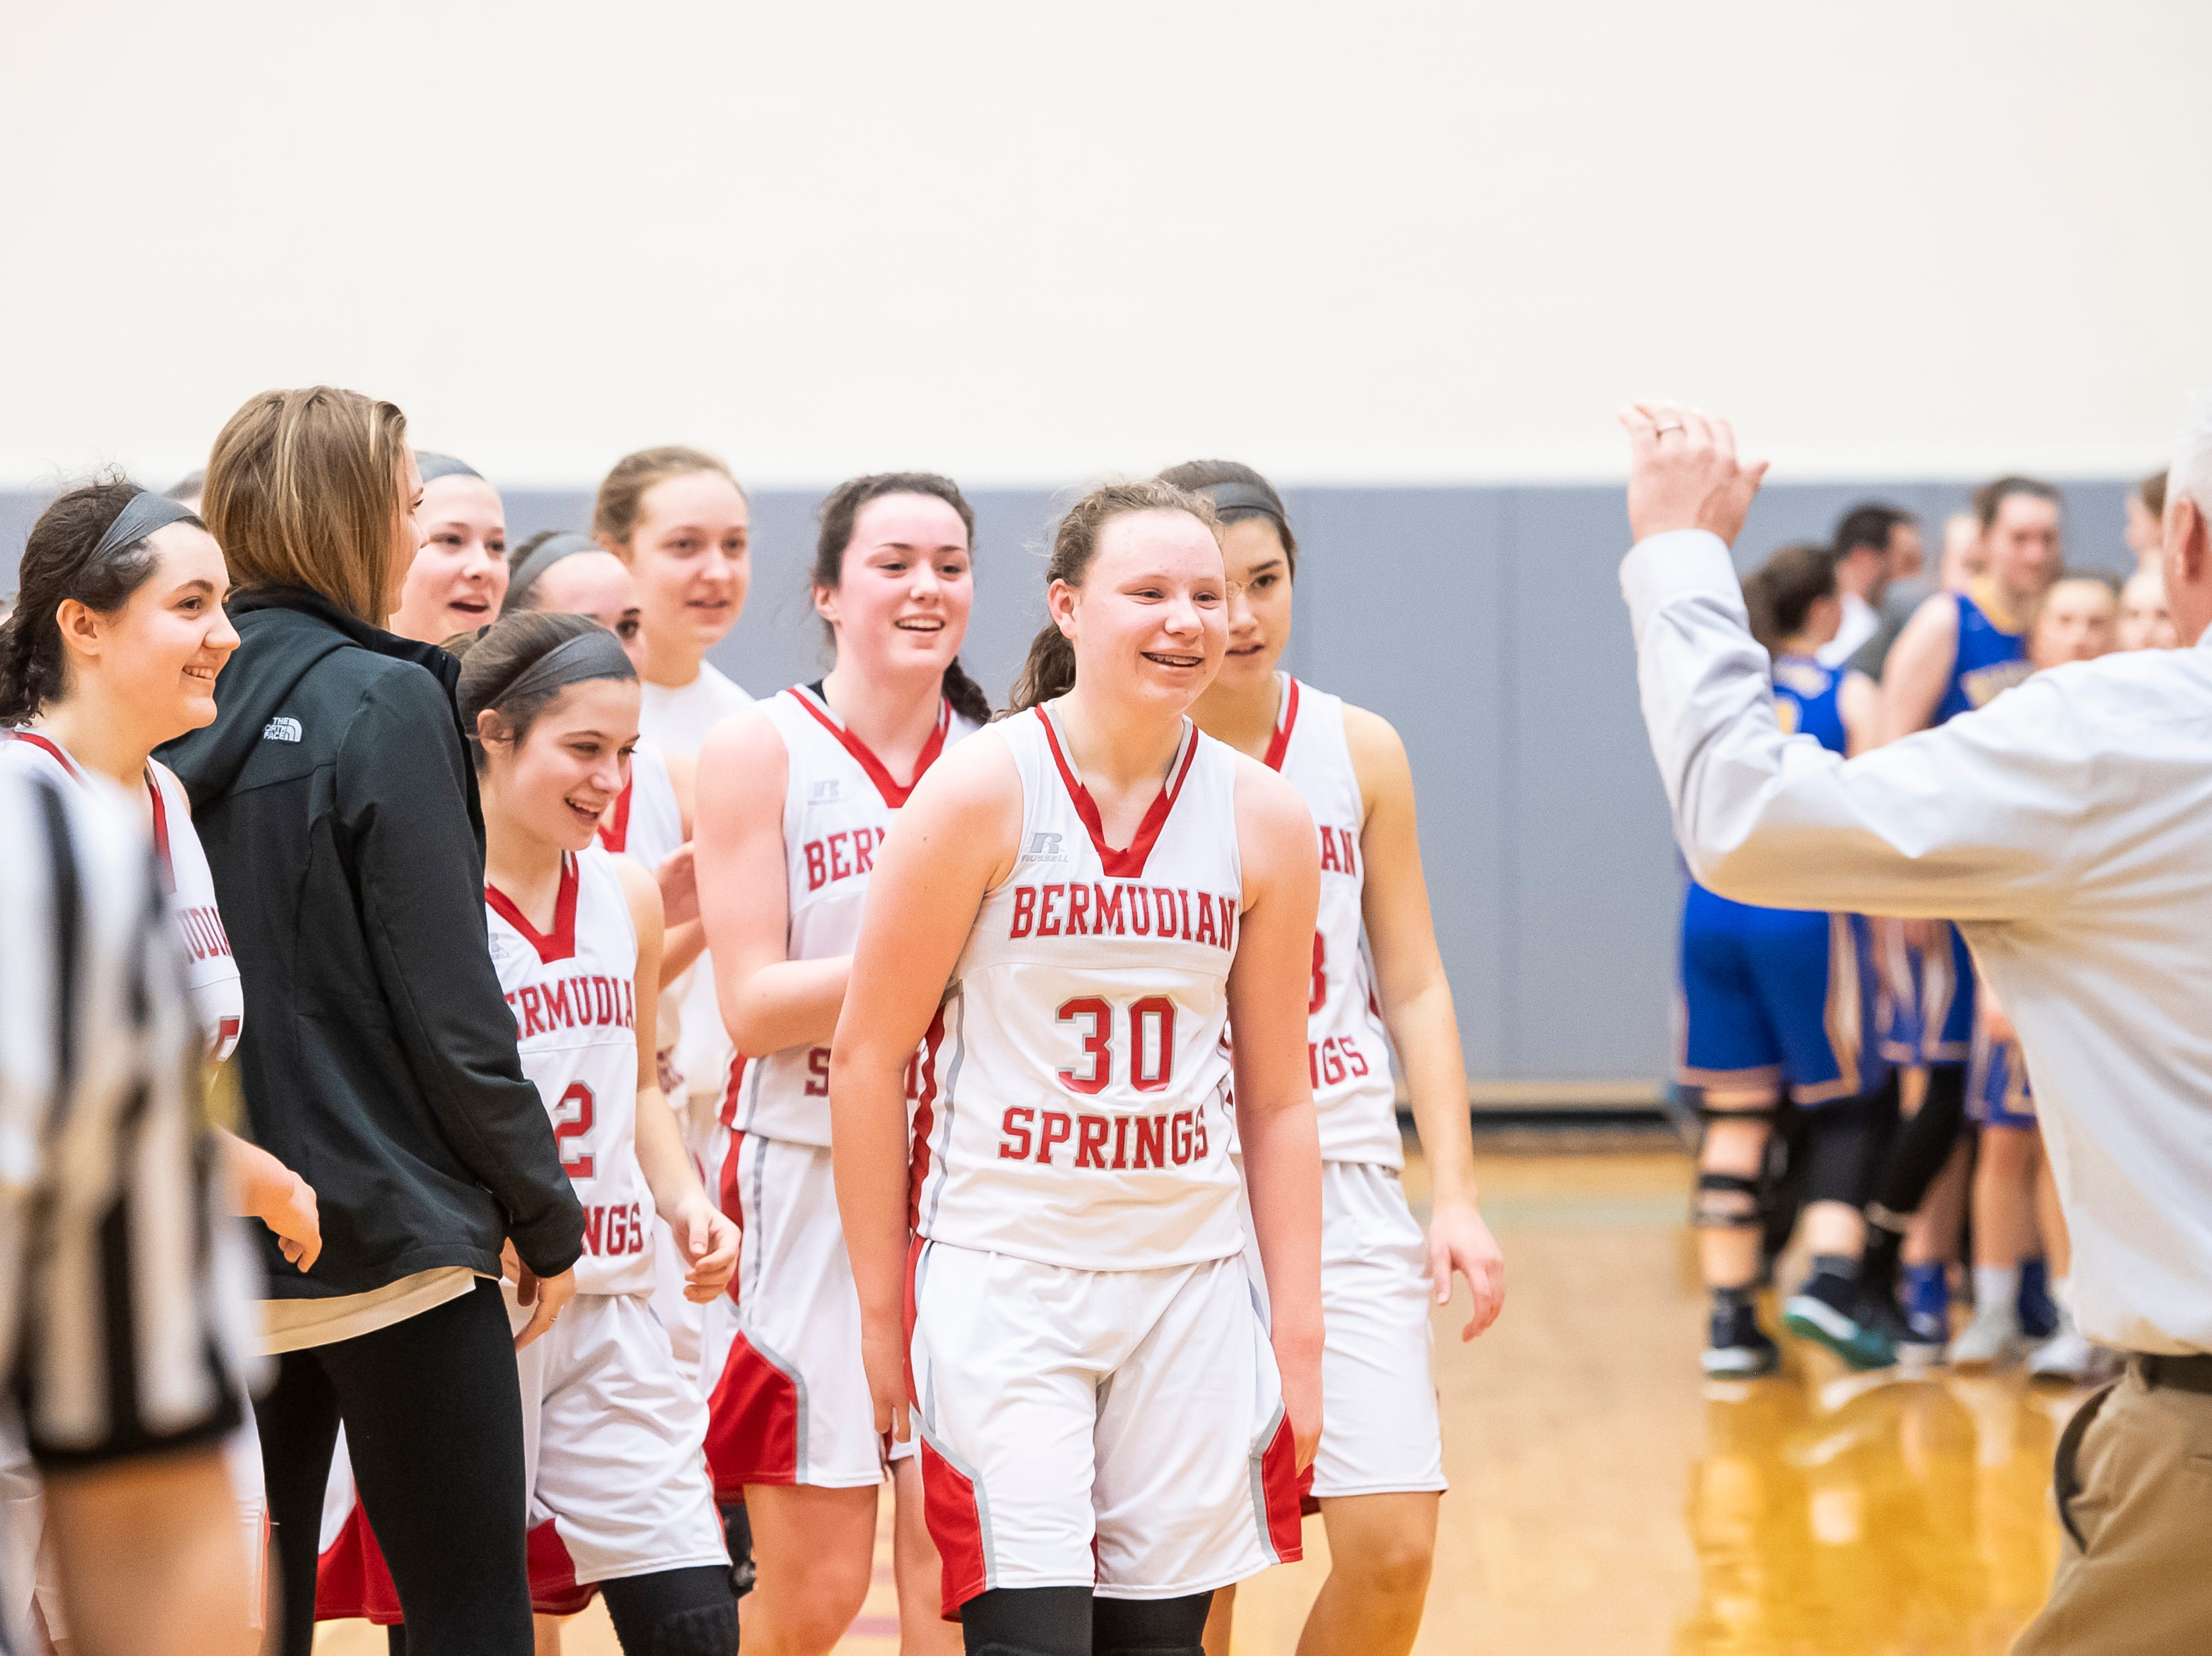 Bermudian Springs players head to the sideline after downing Northern Lebanon in the first round of the District III 4-A playoffs Tuesday, February 19, 2019. The Eagles won 58-52.